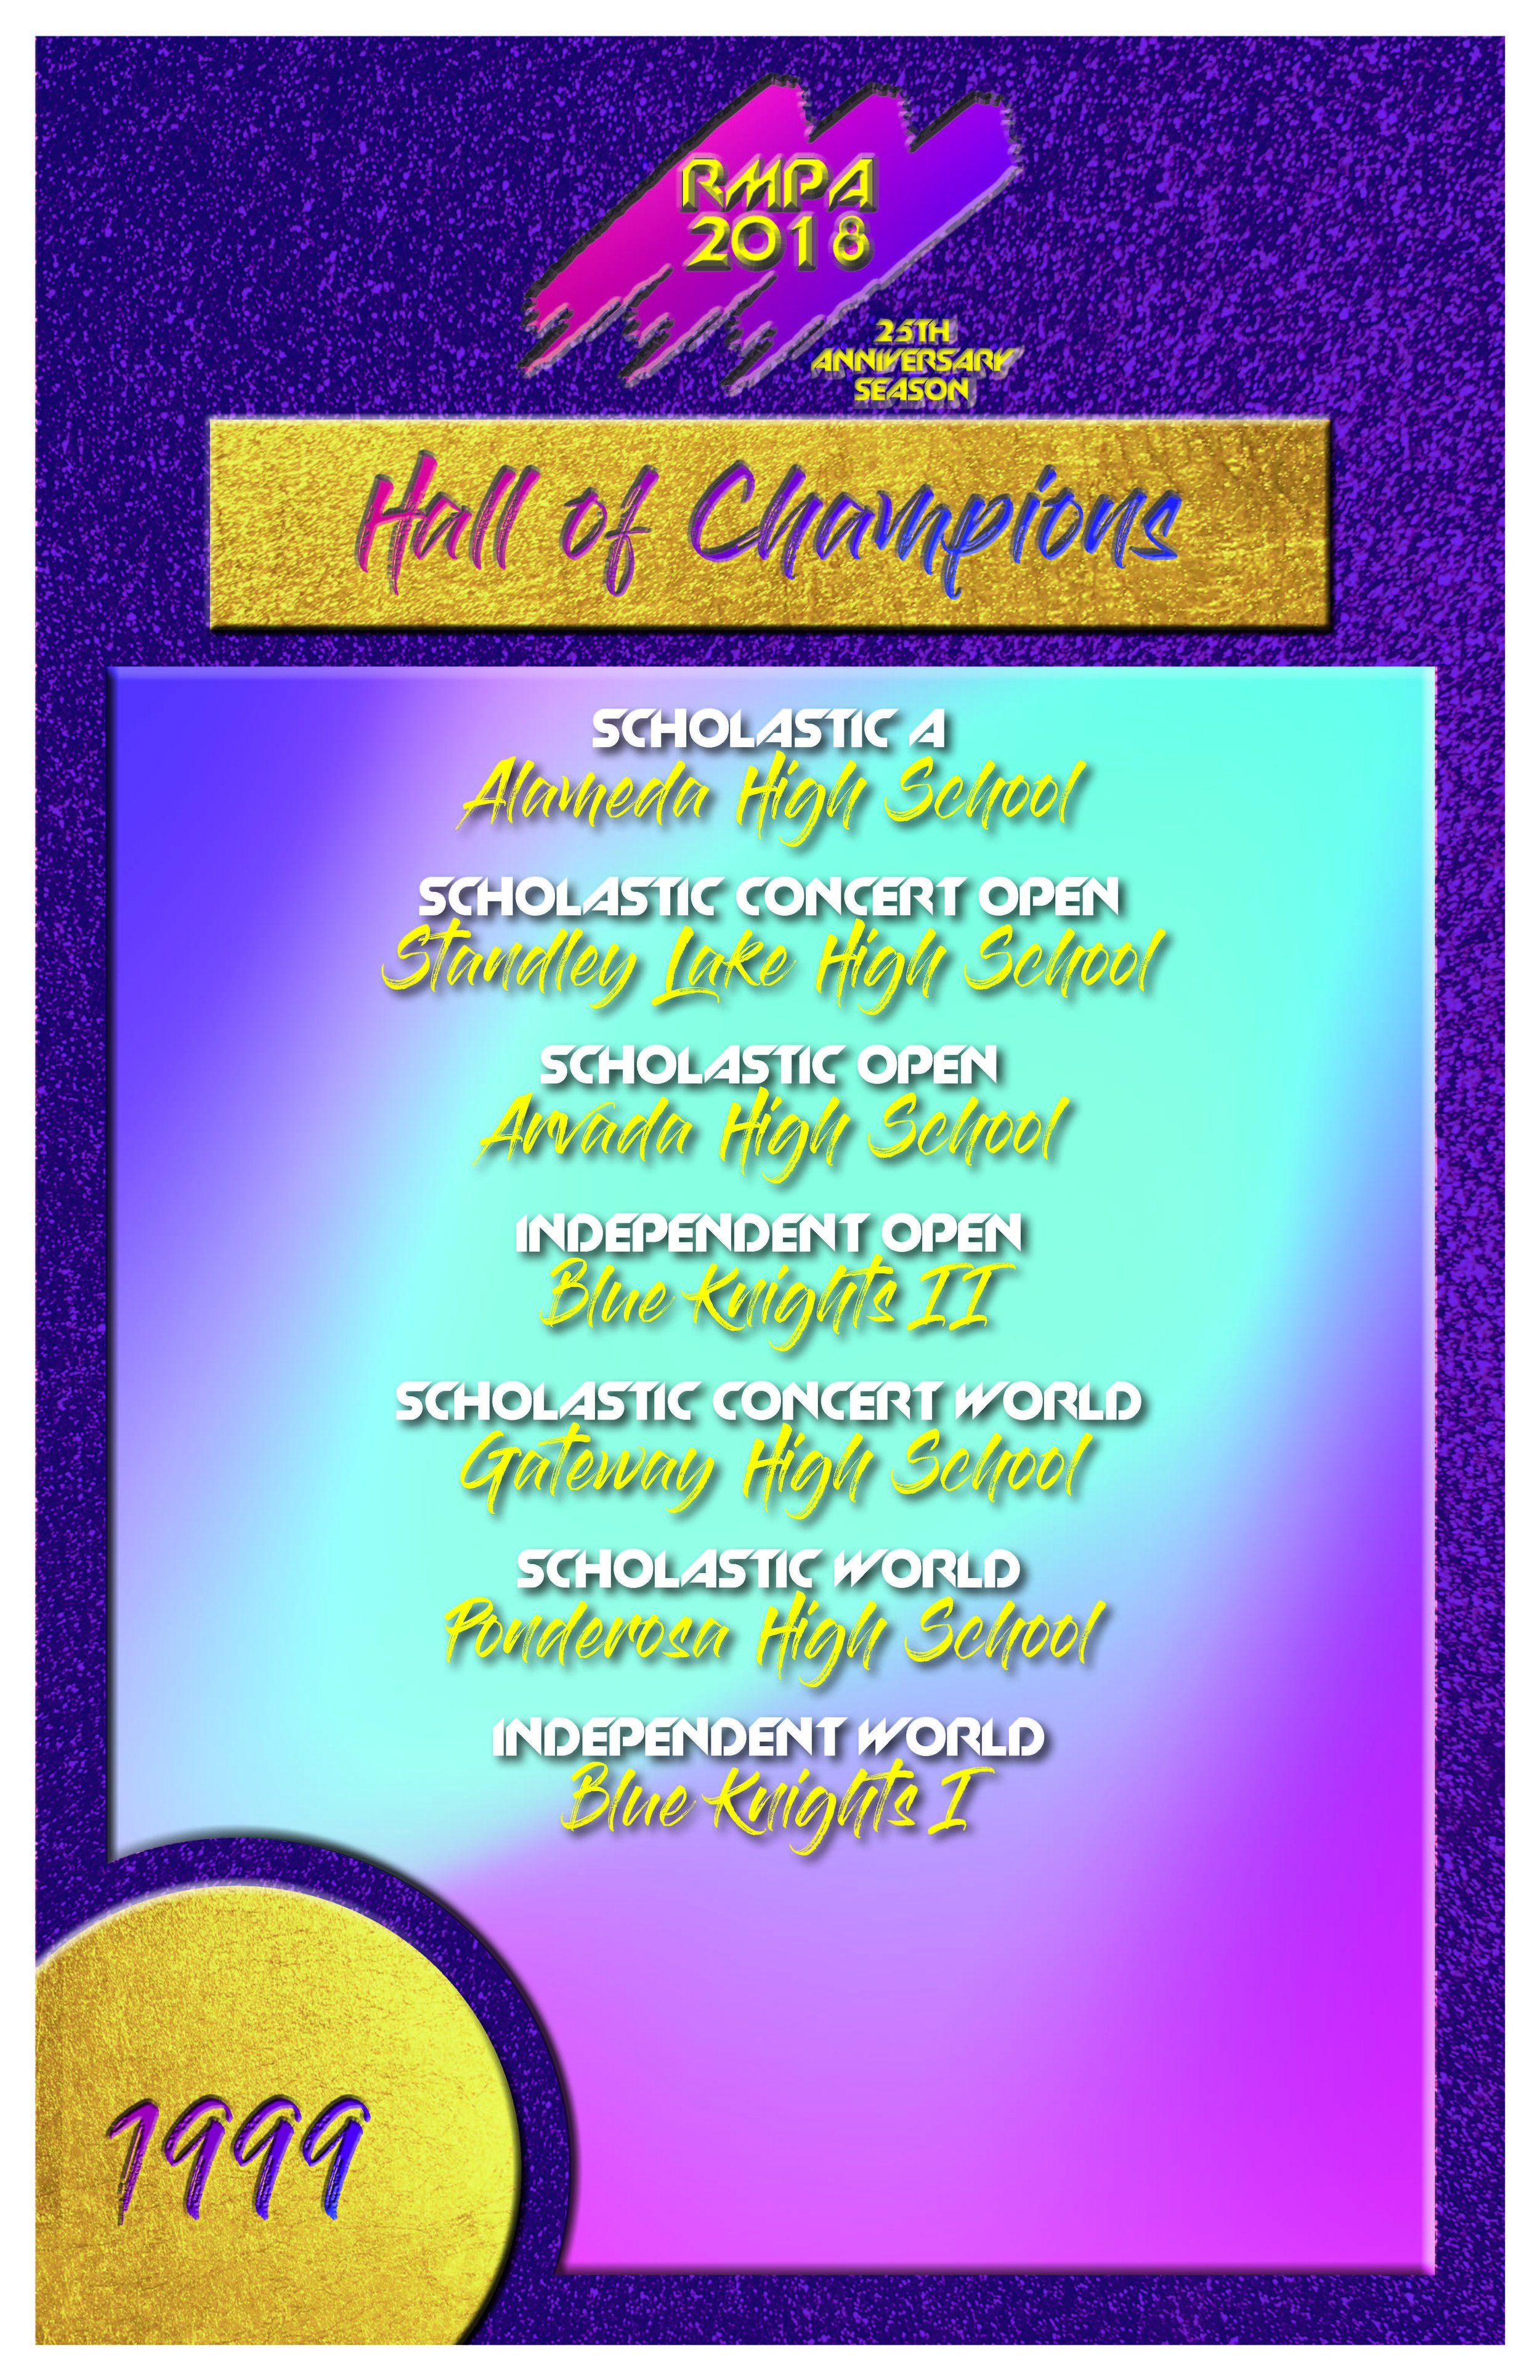 Hall of Champions Posters_Page_07.jpg